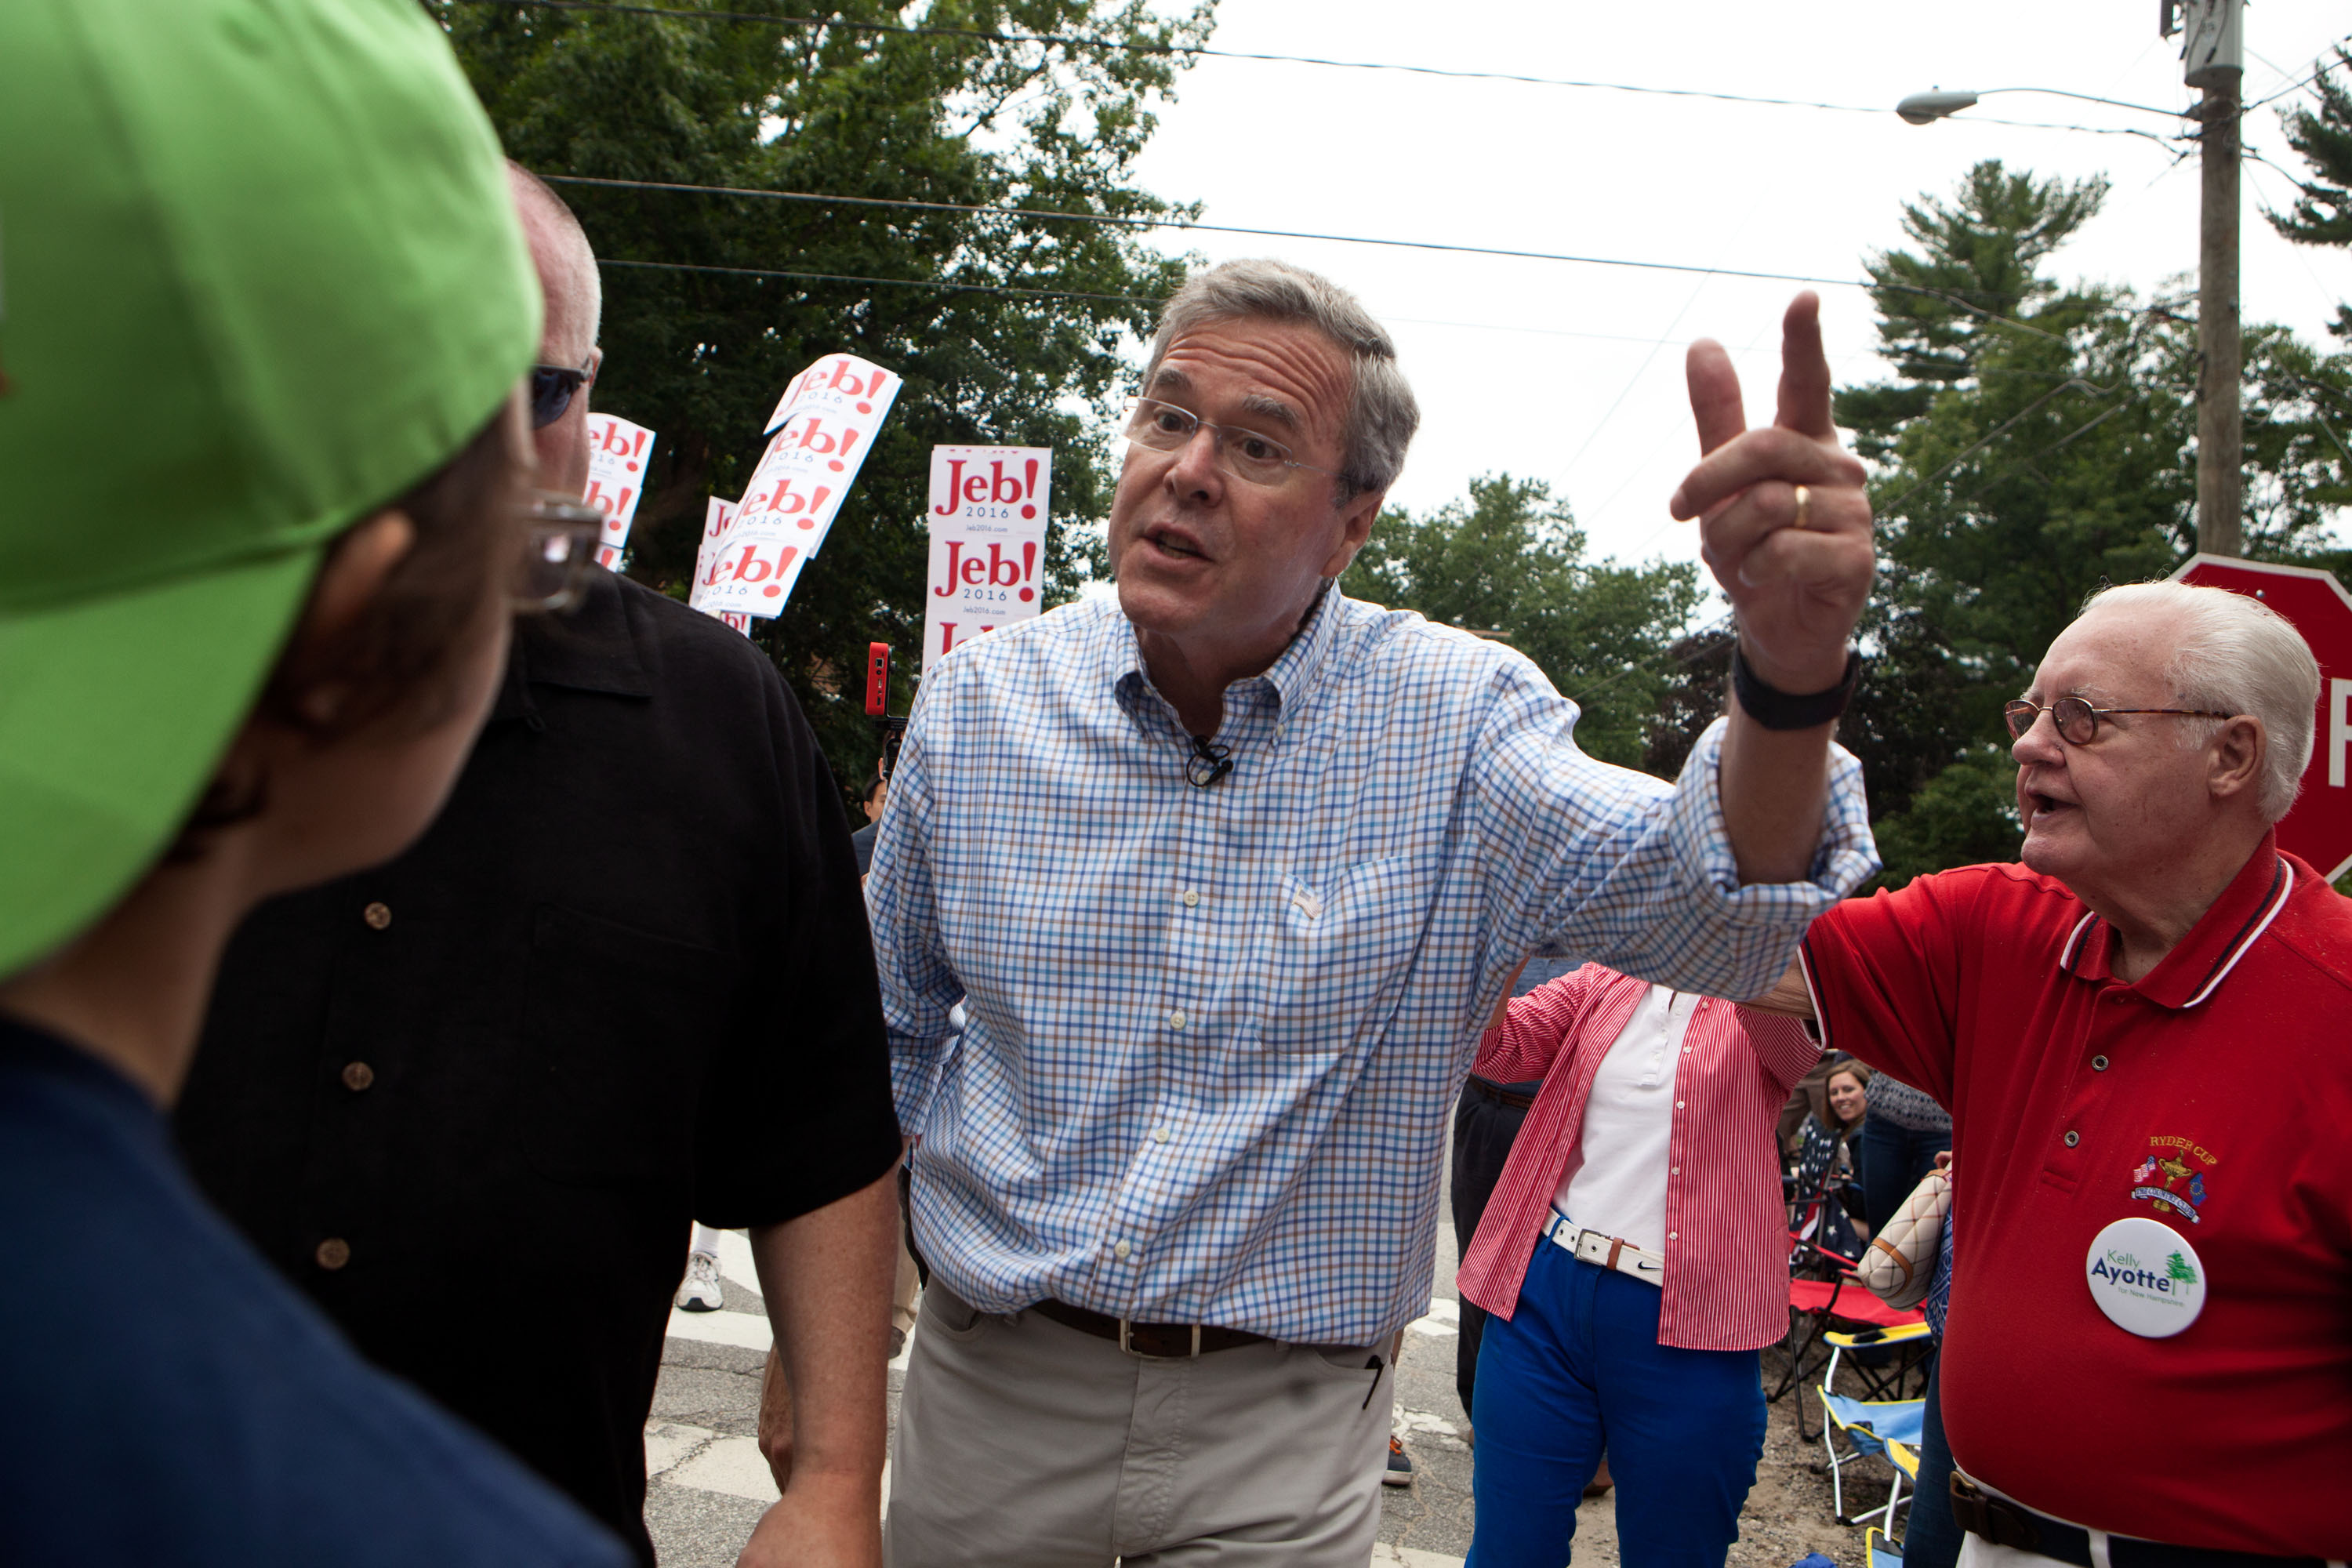 Republican Presidential Candidate Jeb Bush Campaigns In New Hampshire On July 4th